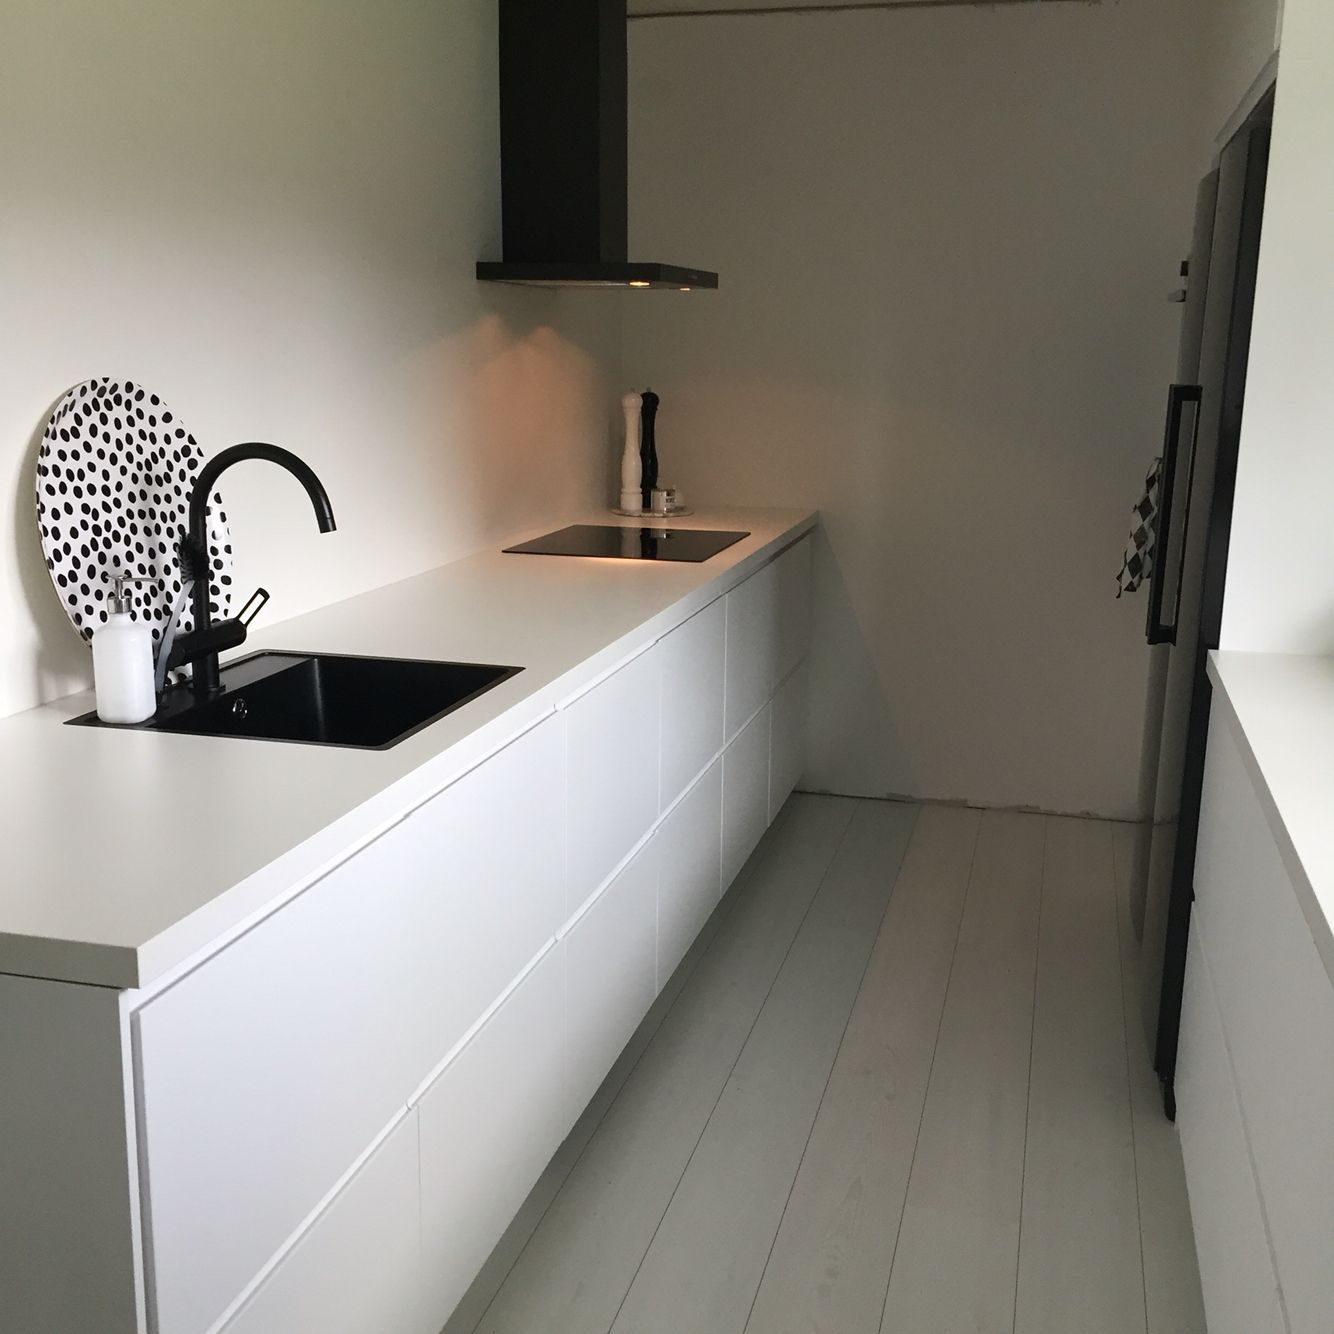 Ikea Küche Miniküche Ikea Voxtorp Keittiö In 2019 Ikea Kitchen Ikea Und Kitchen Decor